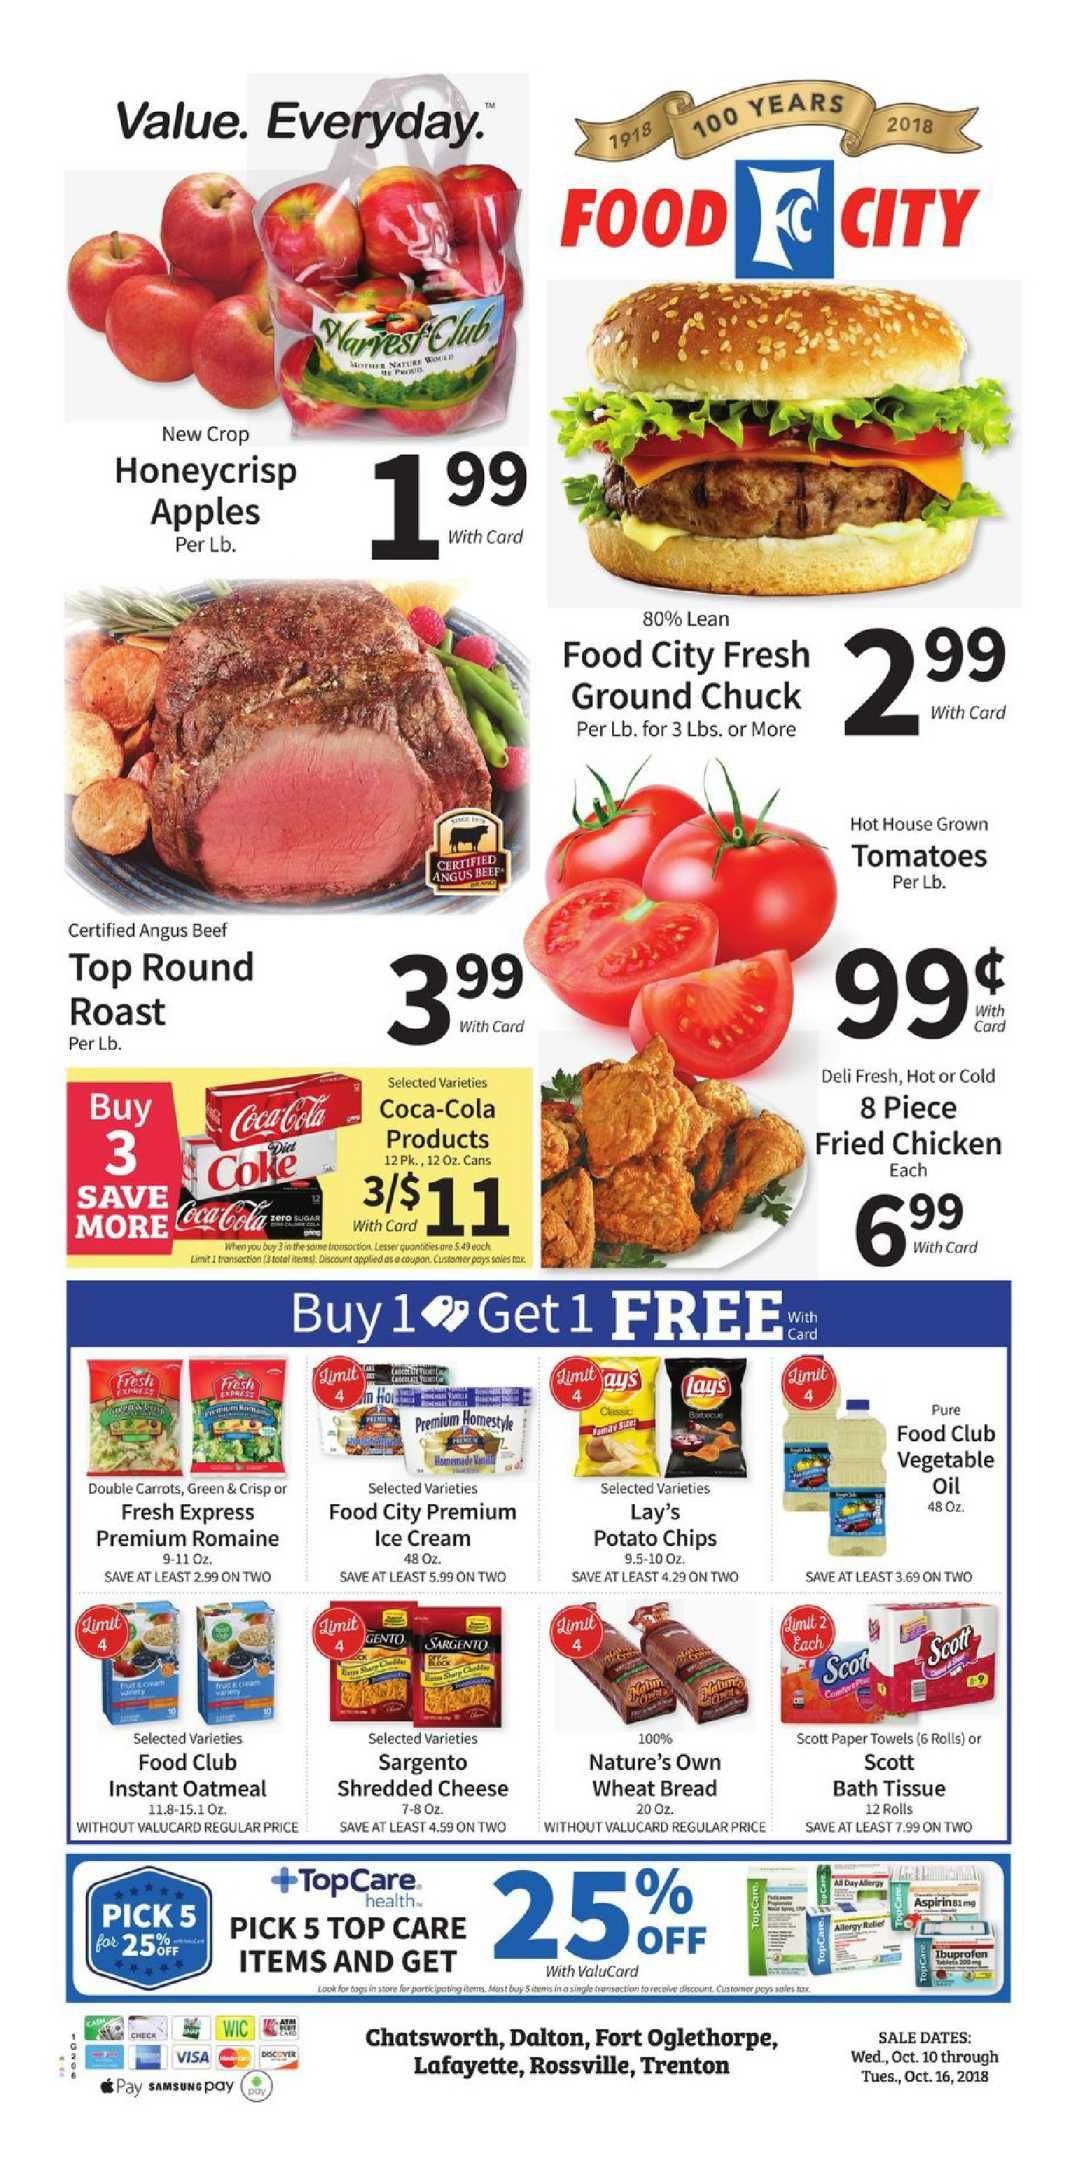 Food City Weekly Ad Flyer December 26 2018 January 1 2019